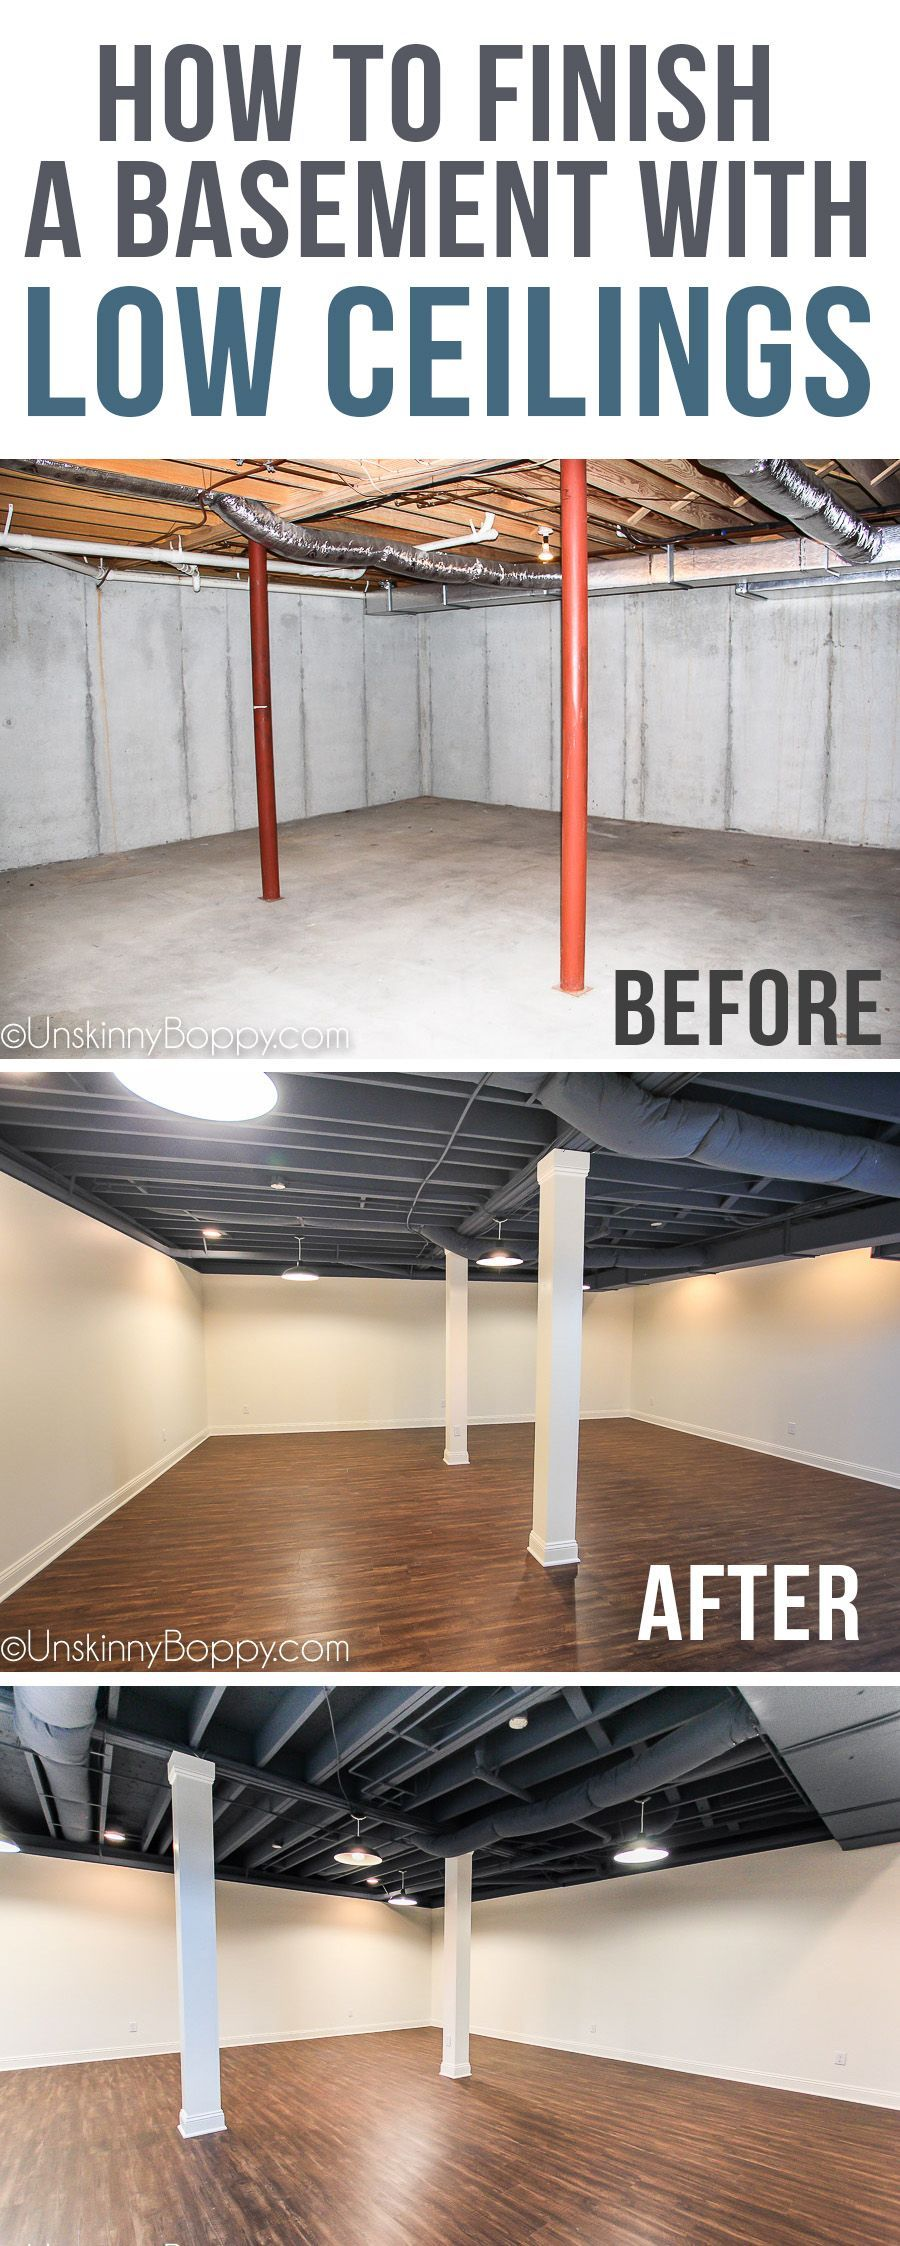 ... Unfinished Basement Ideas On A Budget How To Make An Unfinished Basement  Livable Unfinished Basement Ceiling Ideas Unfinished Basement Wall Covering  ...